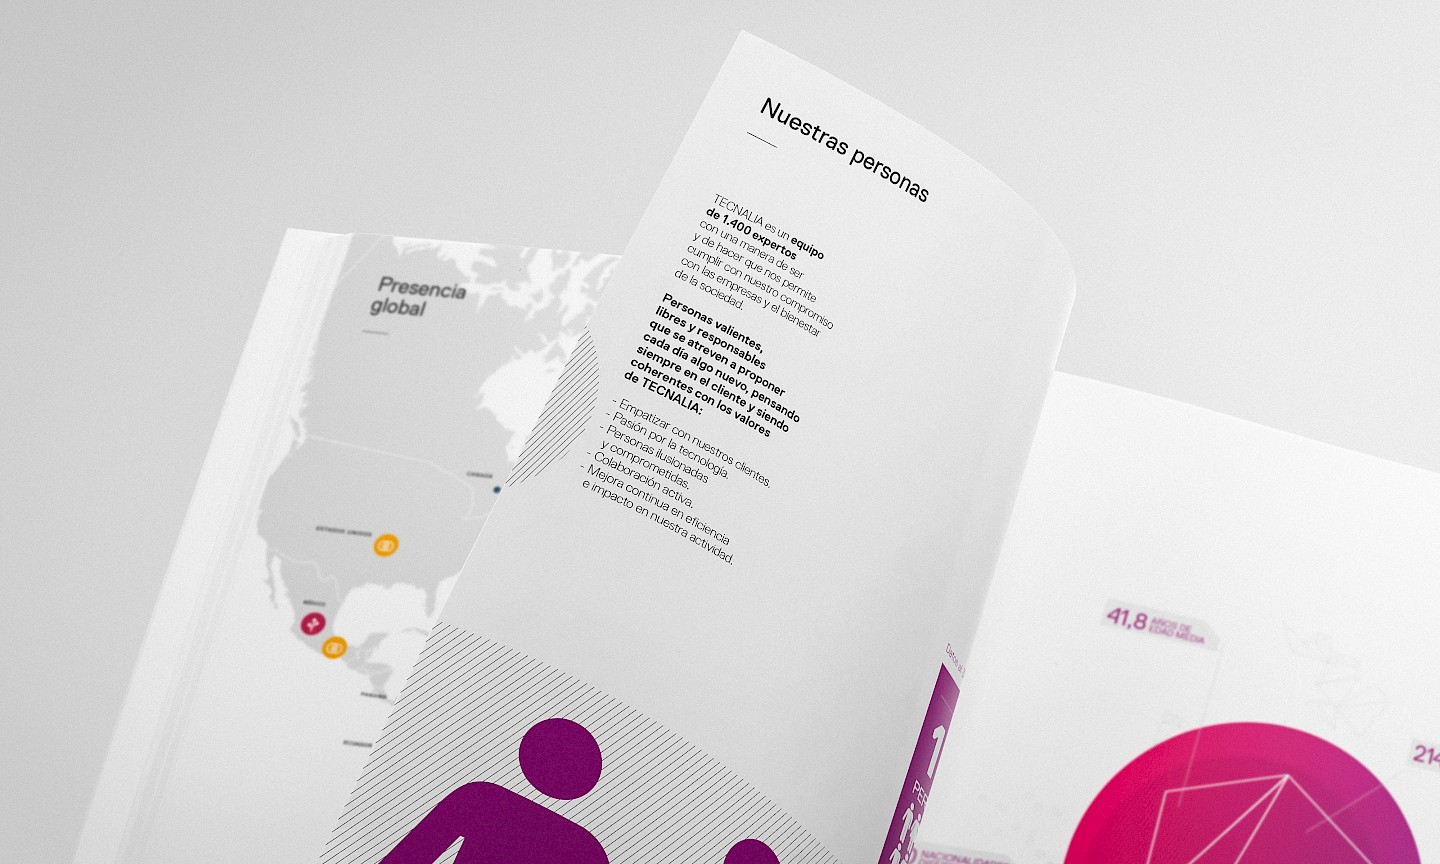 tecnalia digital design move engineering print 04 branding app technology